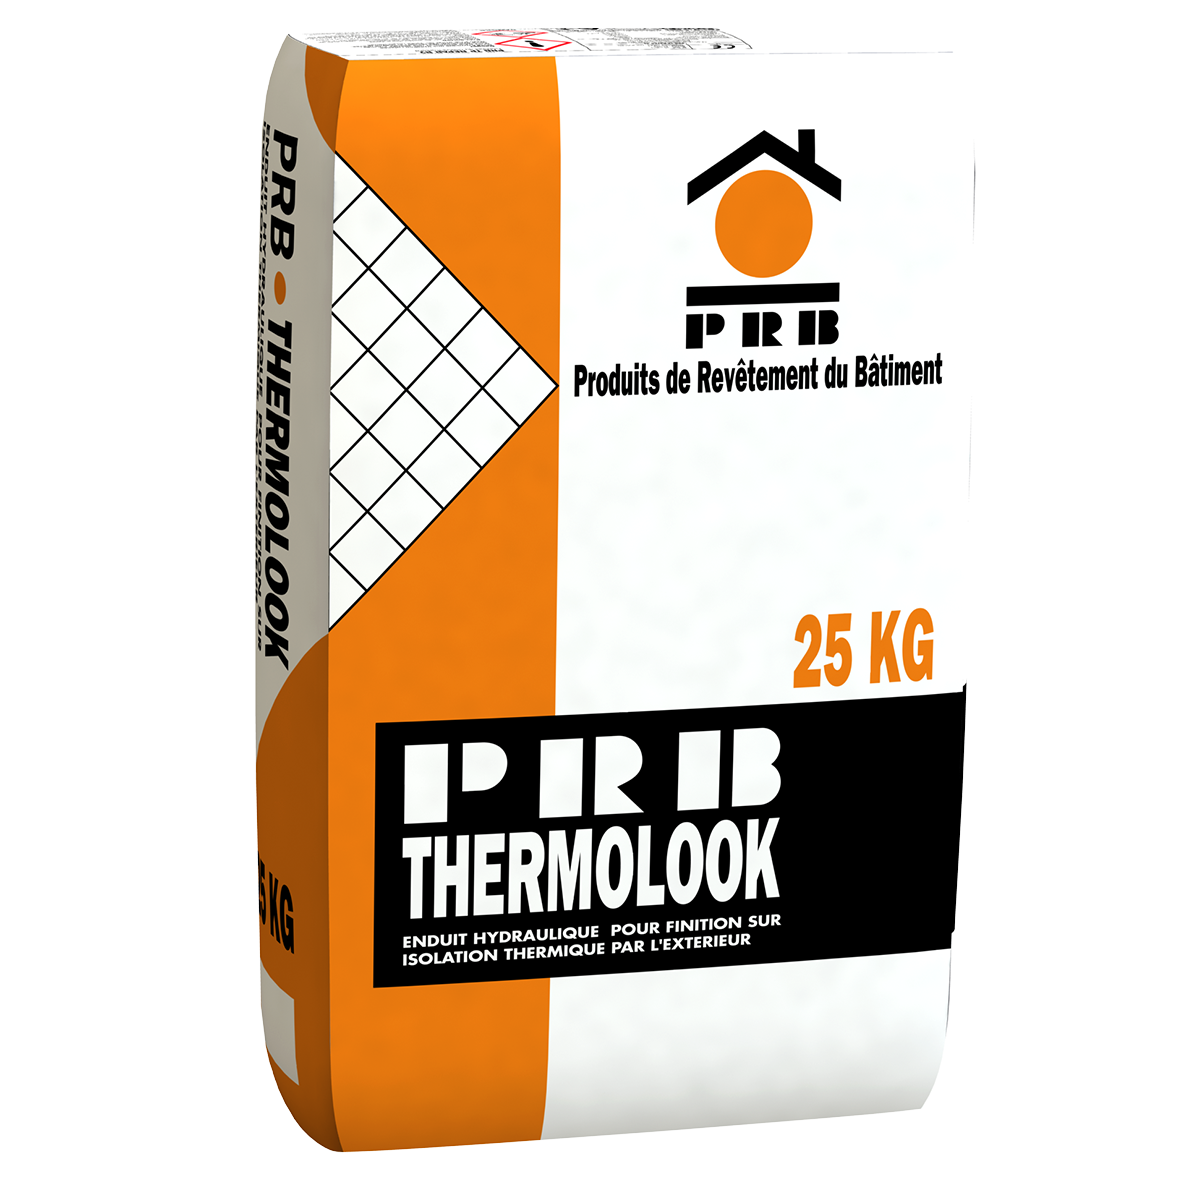 PRB THERMOLOOK GF/GM 25 KG